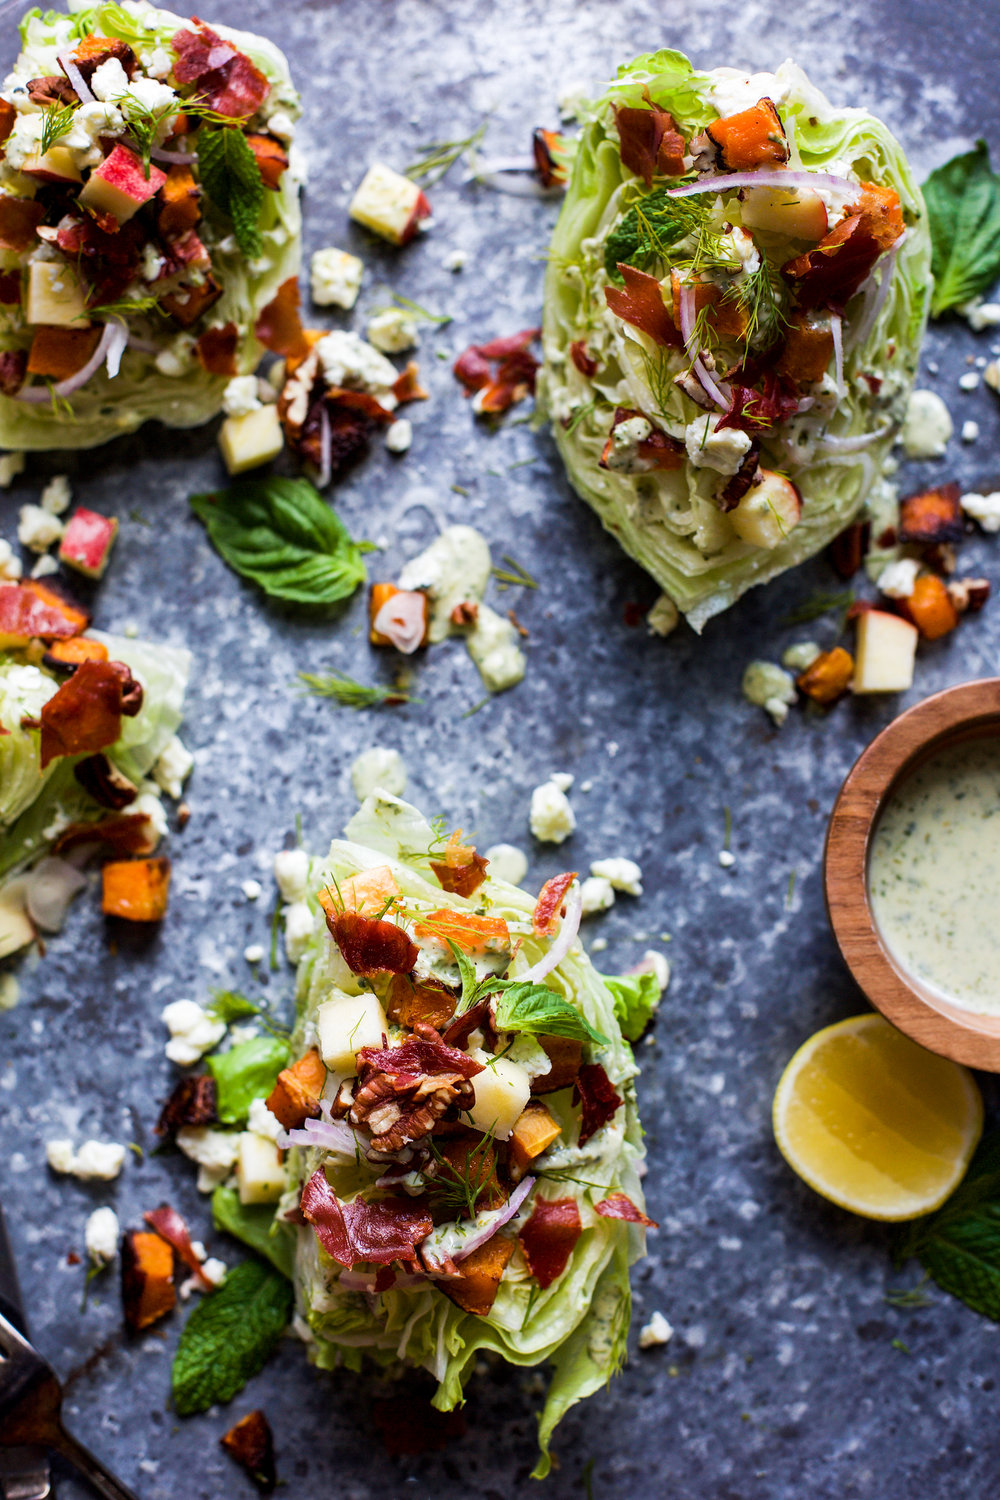 Autumn Wedge Salad with Green Goddess Dressing: My Diary of Us